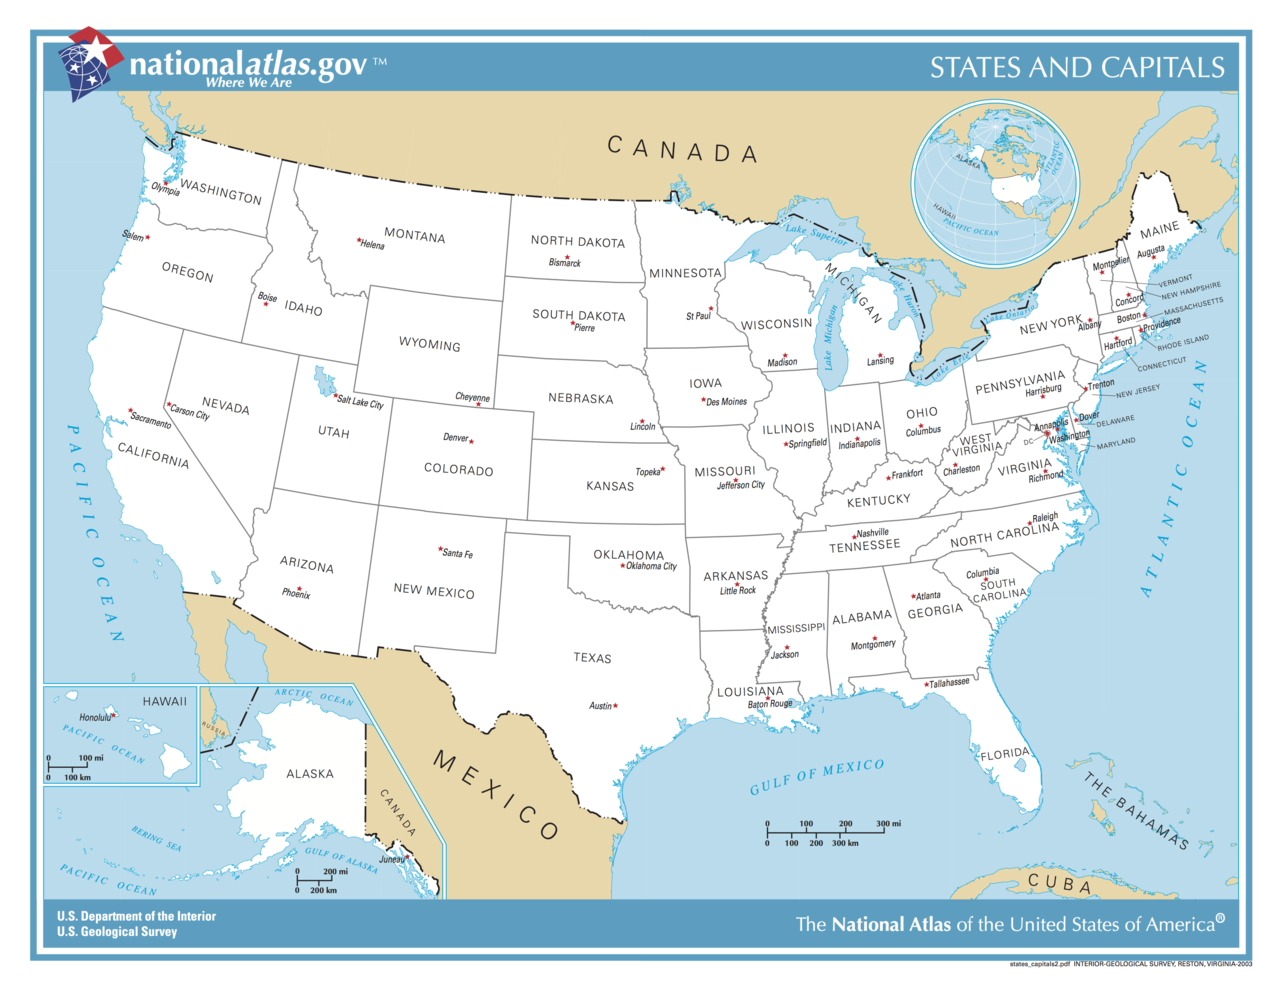 Maps Of The United States USA State Capitals And Major Cities Map - Map of us states and large cities